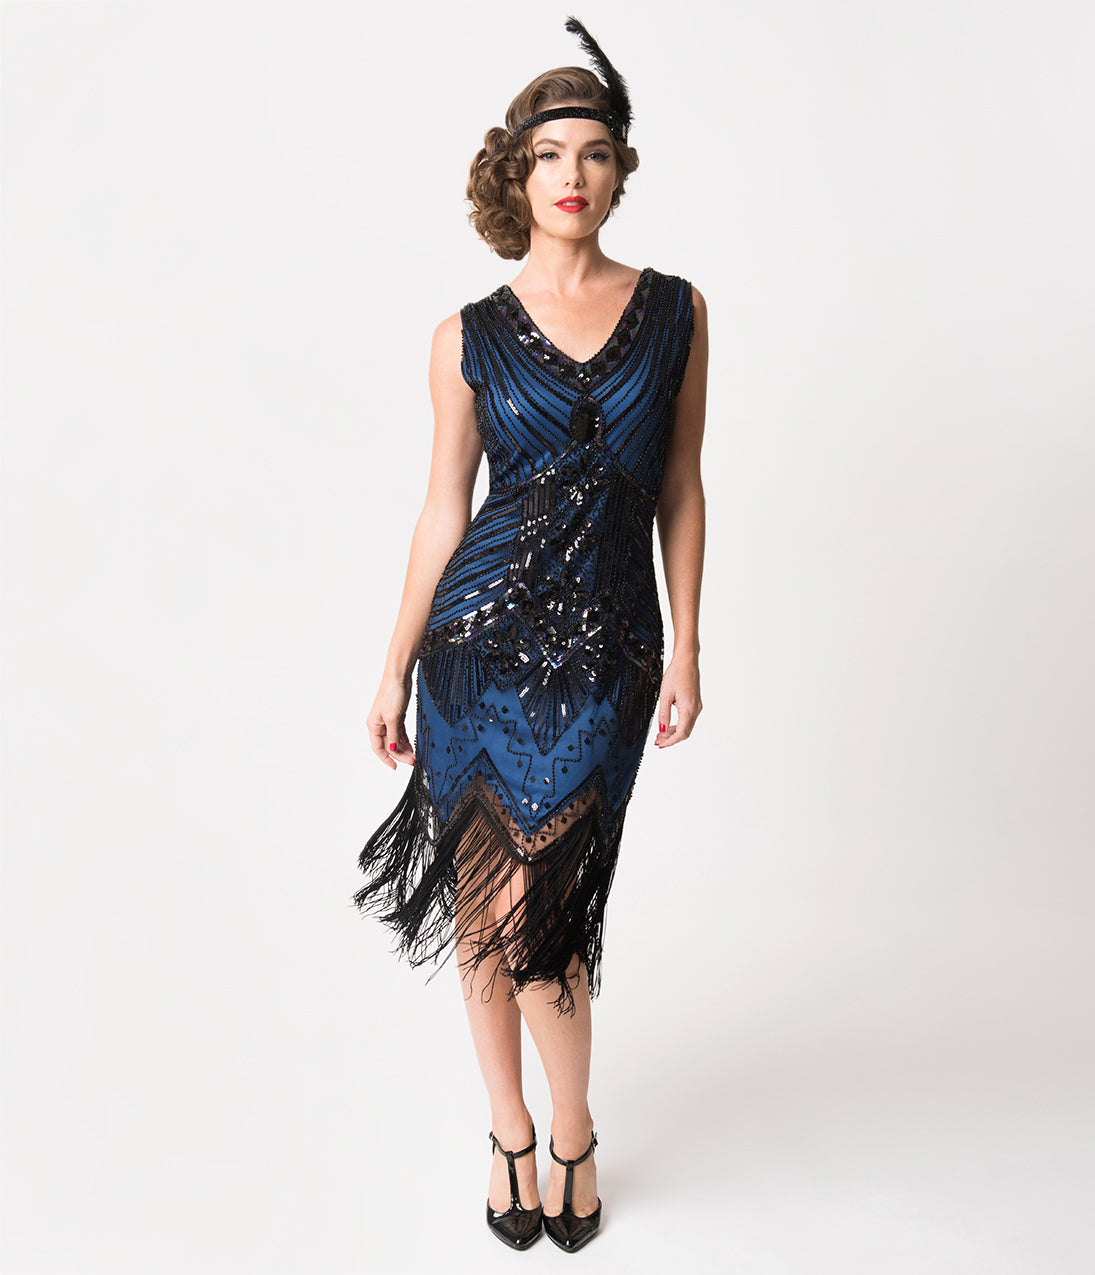 20s Dresses | 1920s Dresses for Sale Unique Vintage 1920S Deco Navy Blue  Black Sequin Veronique Fringe Flapper Dress $98.00 AT vintagedancer.com